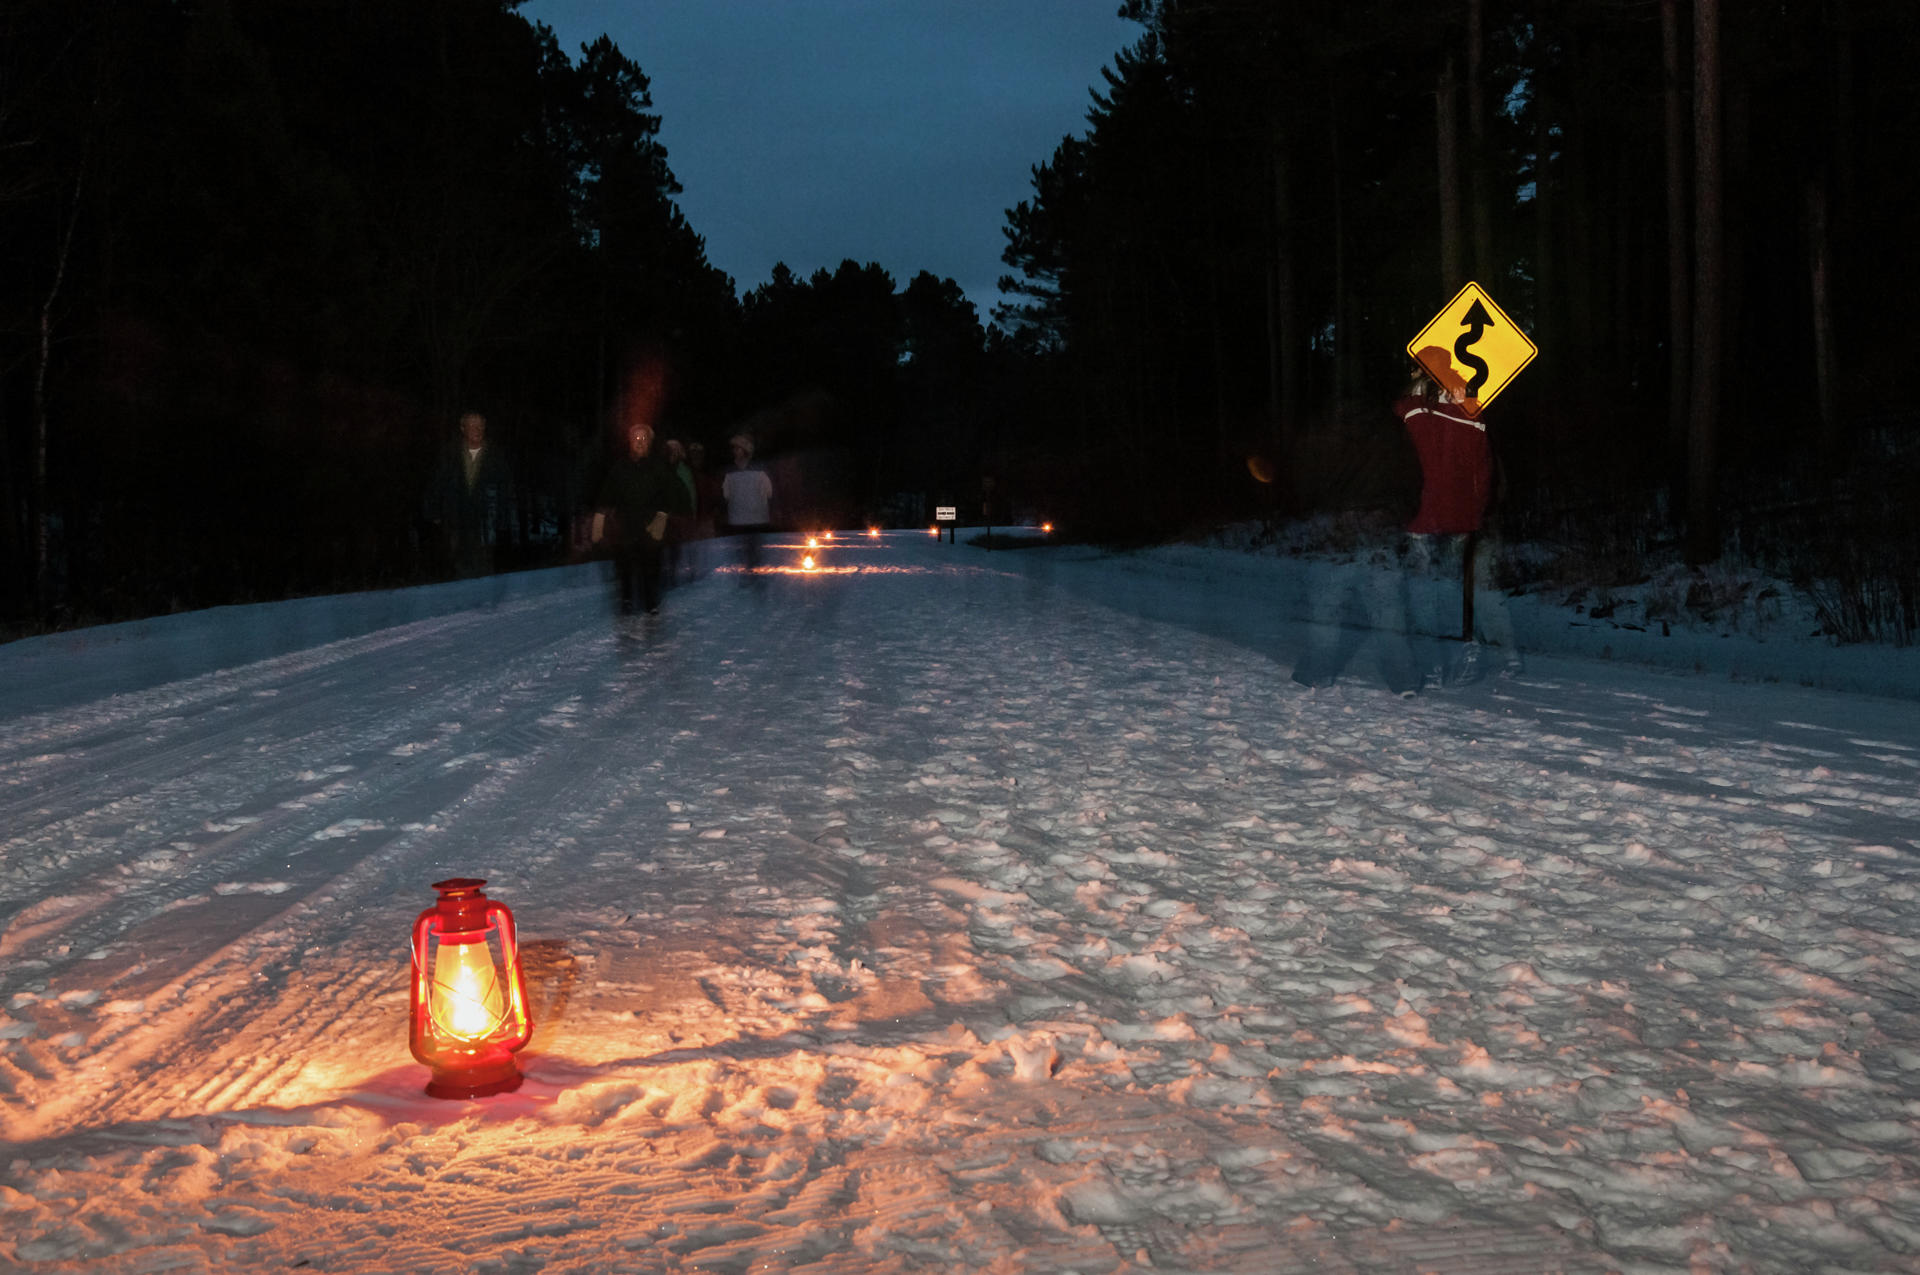 Hikers, snowshoers and cross country skiers are all welcome to hit the trail for next Saturday's Lantern Lit Ski & Snowshoe event at Itasca State Park. The 1.5-mile trail is located south of the park entrance. (Minnesota DNR photo)